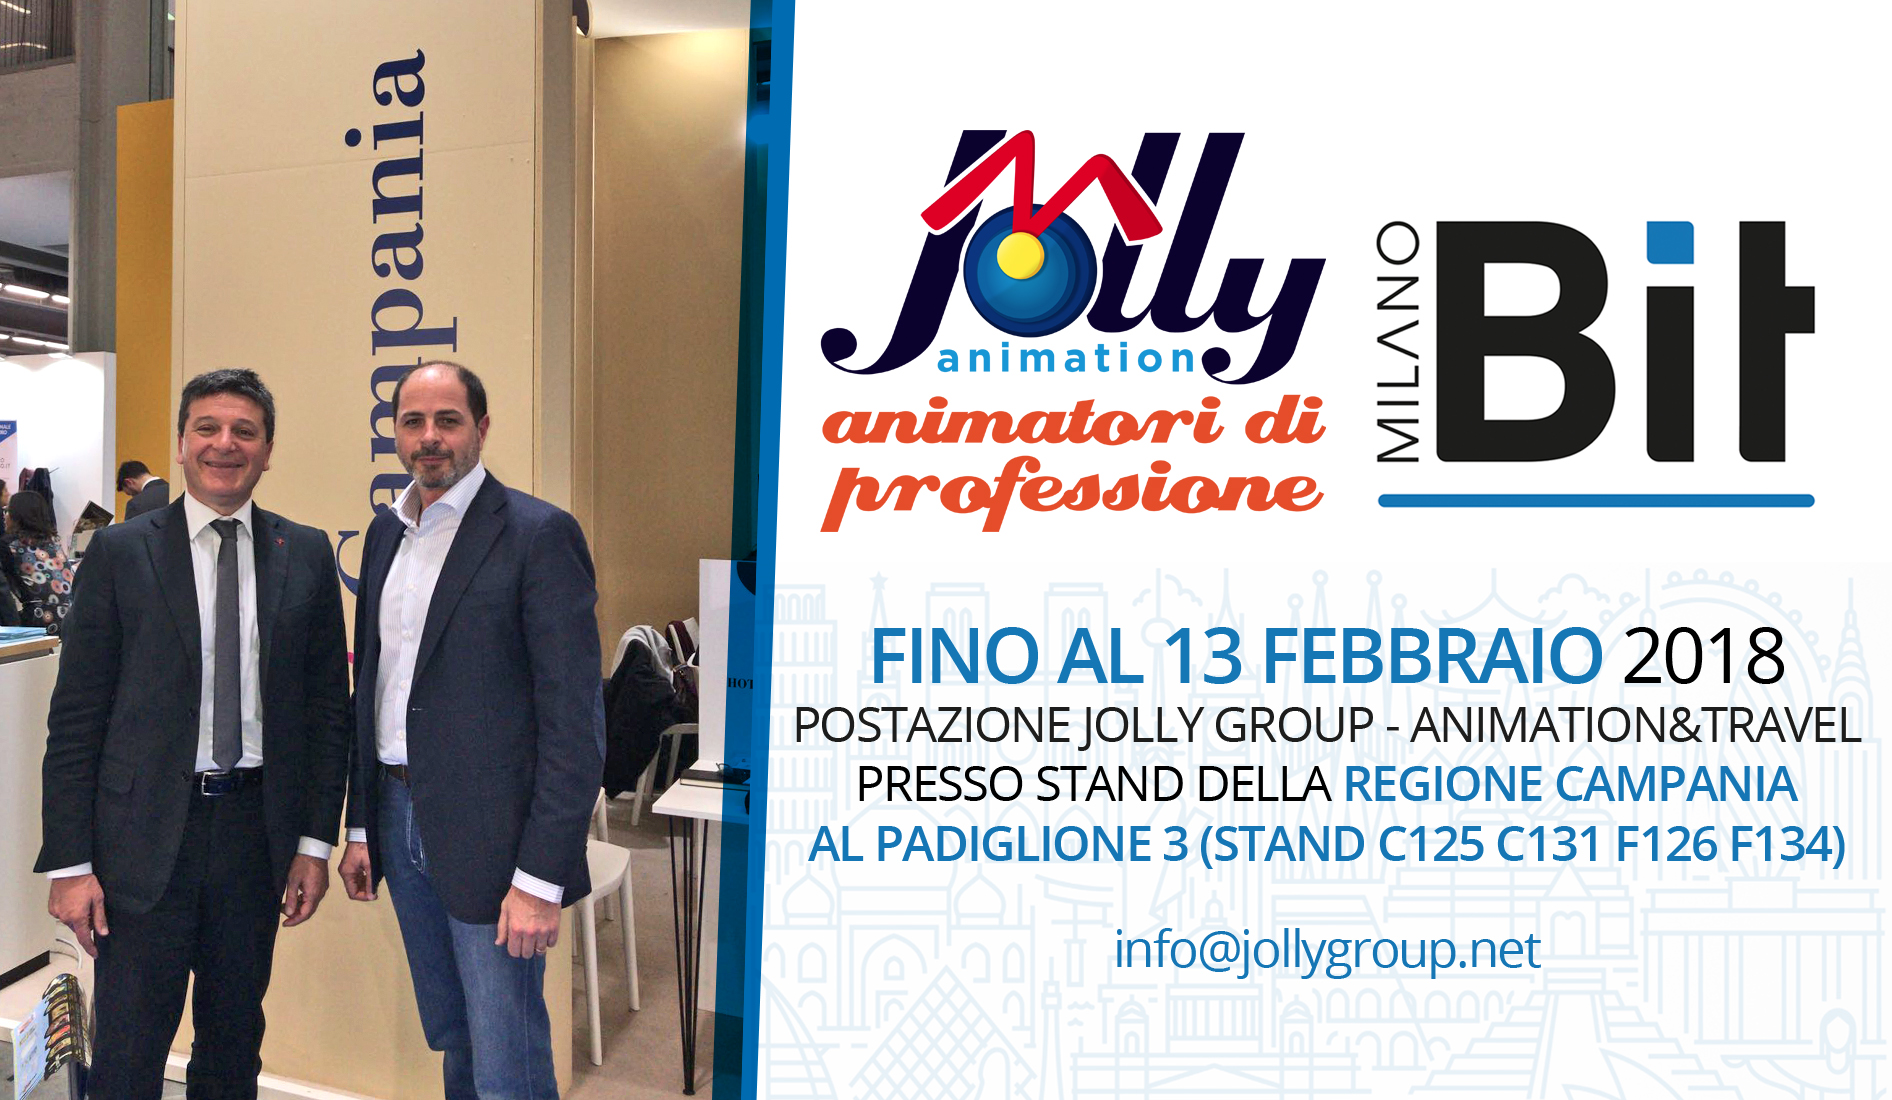 Jolly Animation fino a domani in Bit